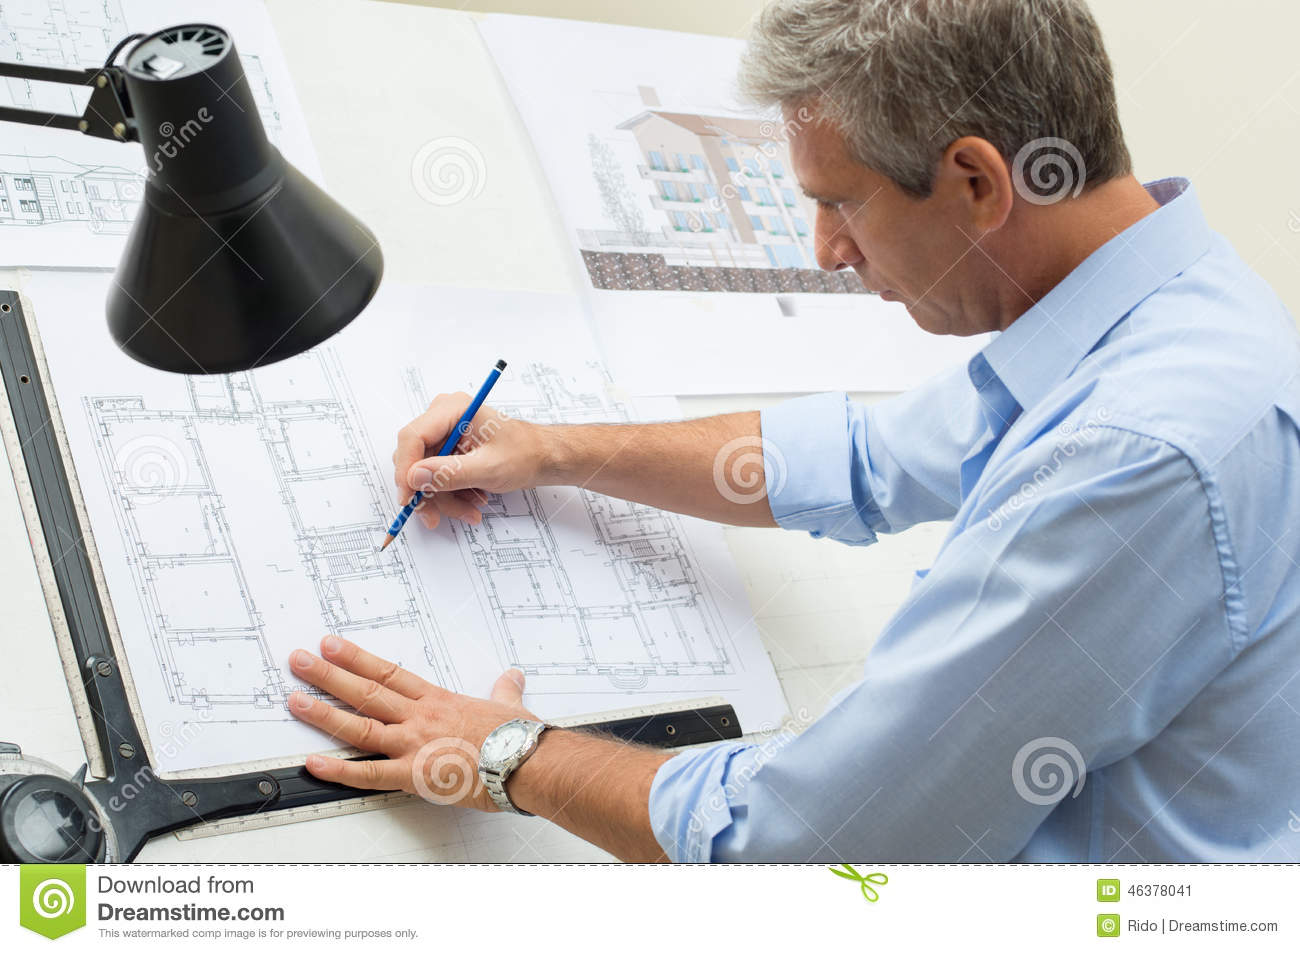 office table design free download with Stock Photo Architect Working Drawing Table Portrait Male Blueprint Office Image46378041 on Royalty Free Stock Image 3d Man Business Meeting Isolated White Image16183006 also Flats Drawing Plan likewise Figurine 20clipart 20visio likewise Royalty Free Stock Photos Business Hand Pen Signing Man Holding To Sign Something Image32352418 moreover Org Chart Creator.